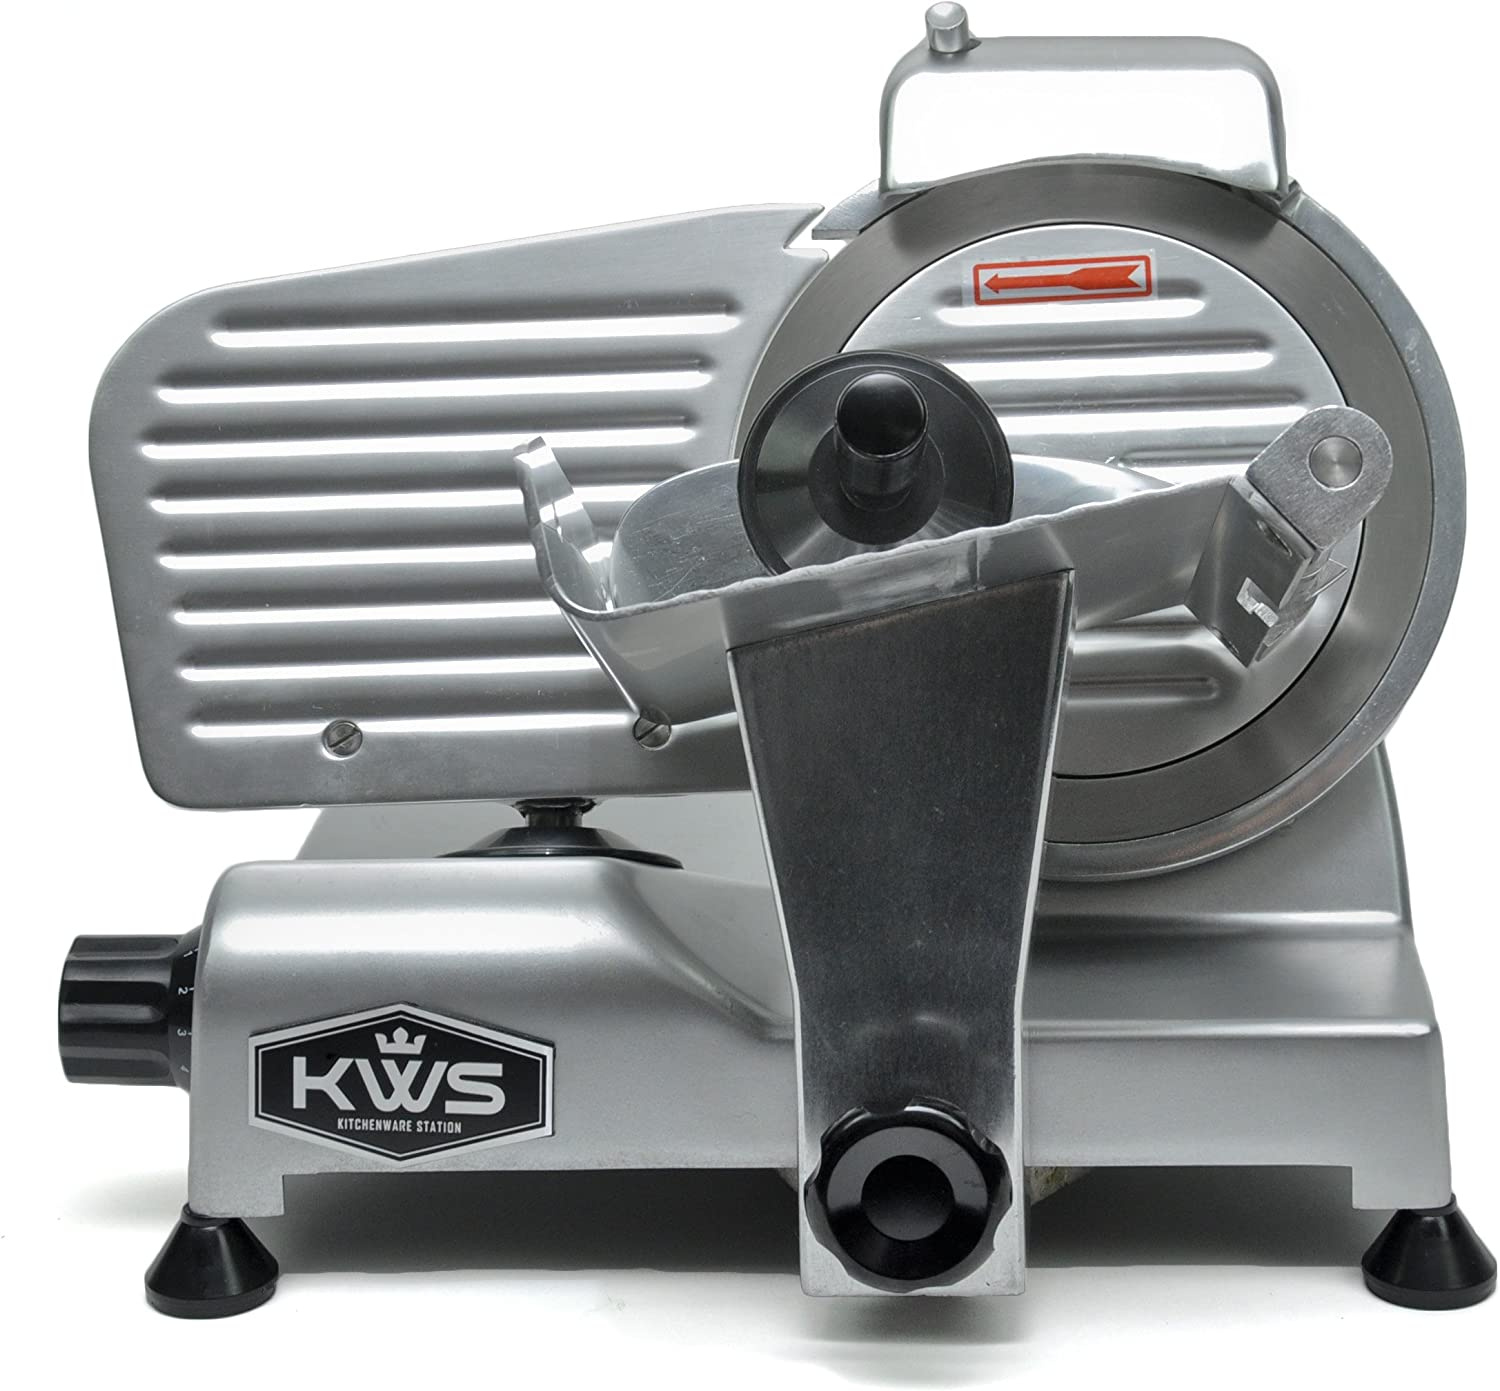 KWS Premium MS-6SS 200w Electric St Stainless Slicer 6-Inch famous Max 50% OFF Meat